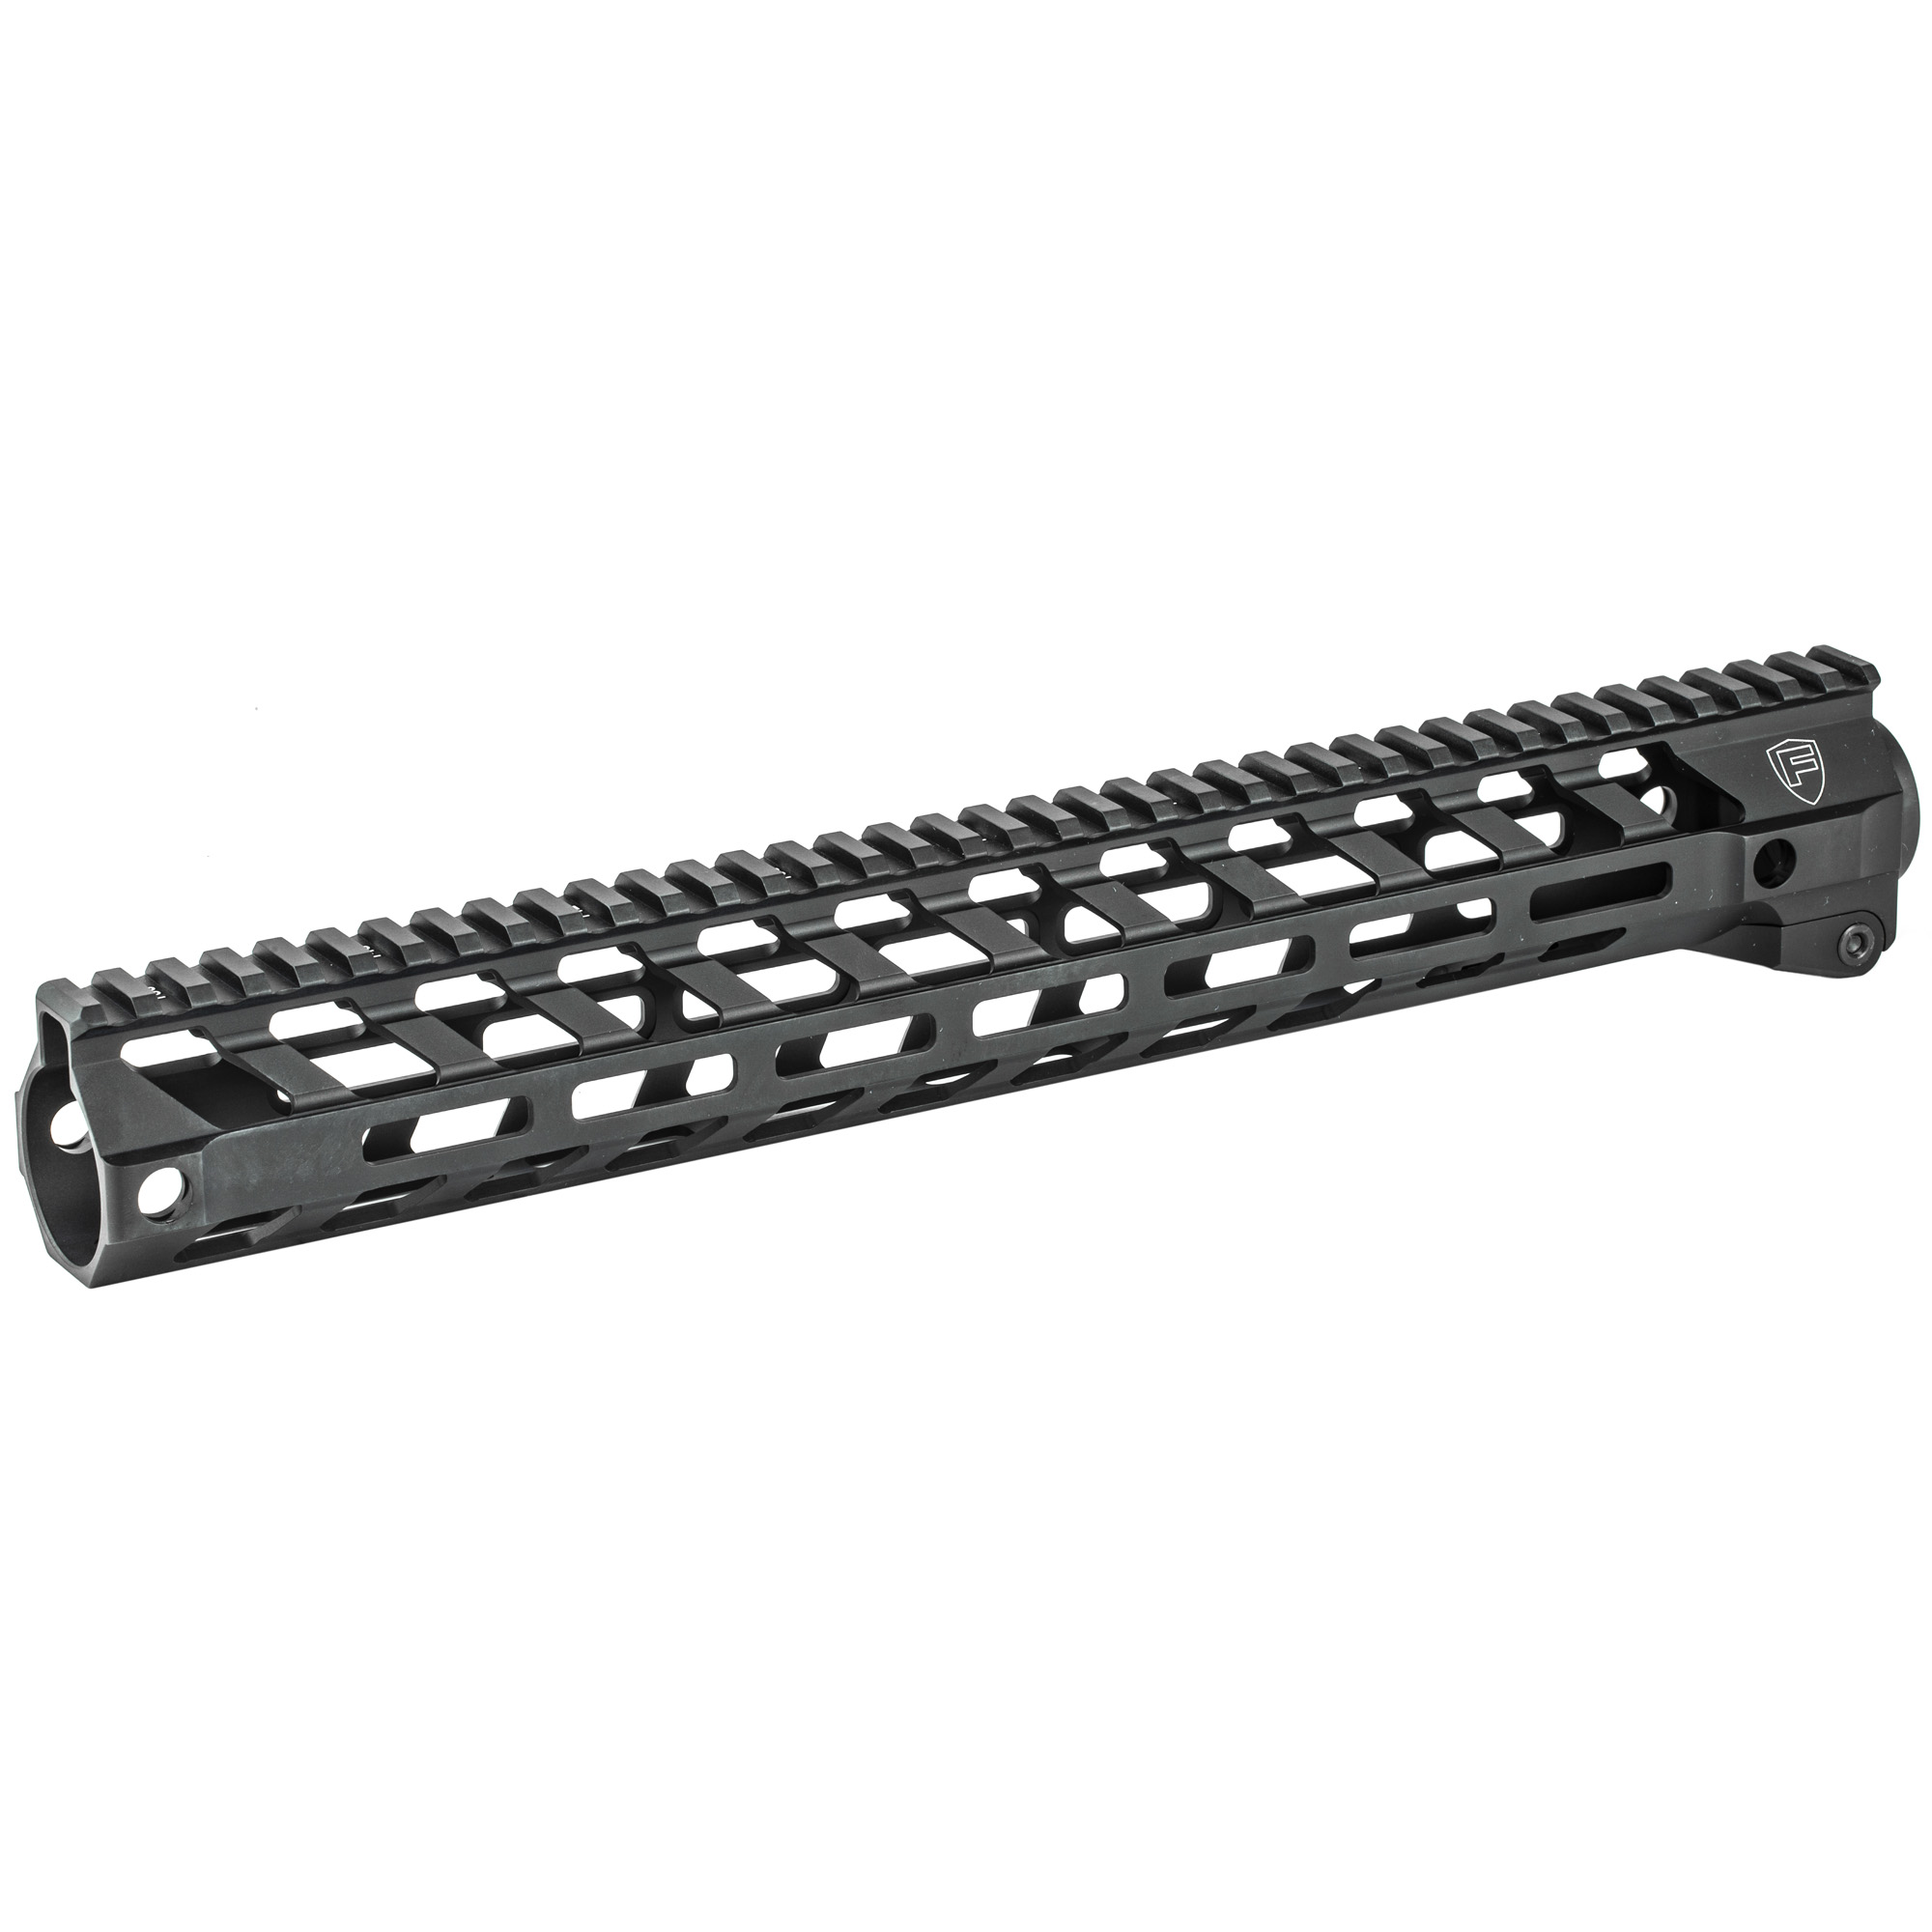 Fortis Switch 556 Rail System 14